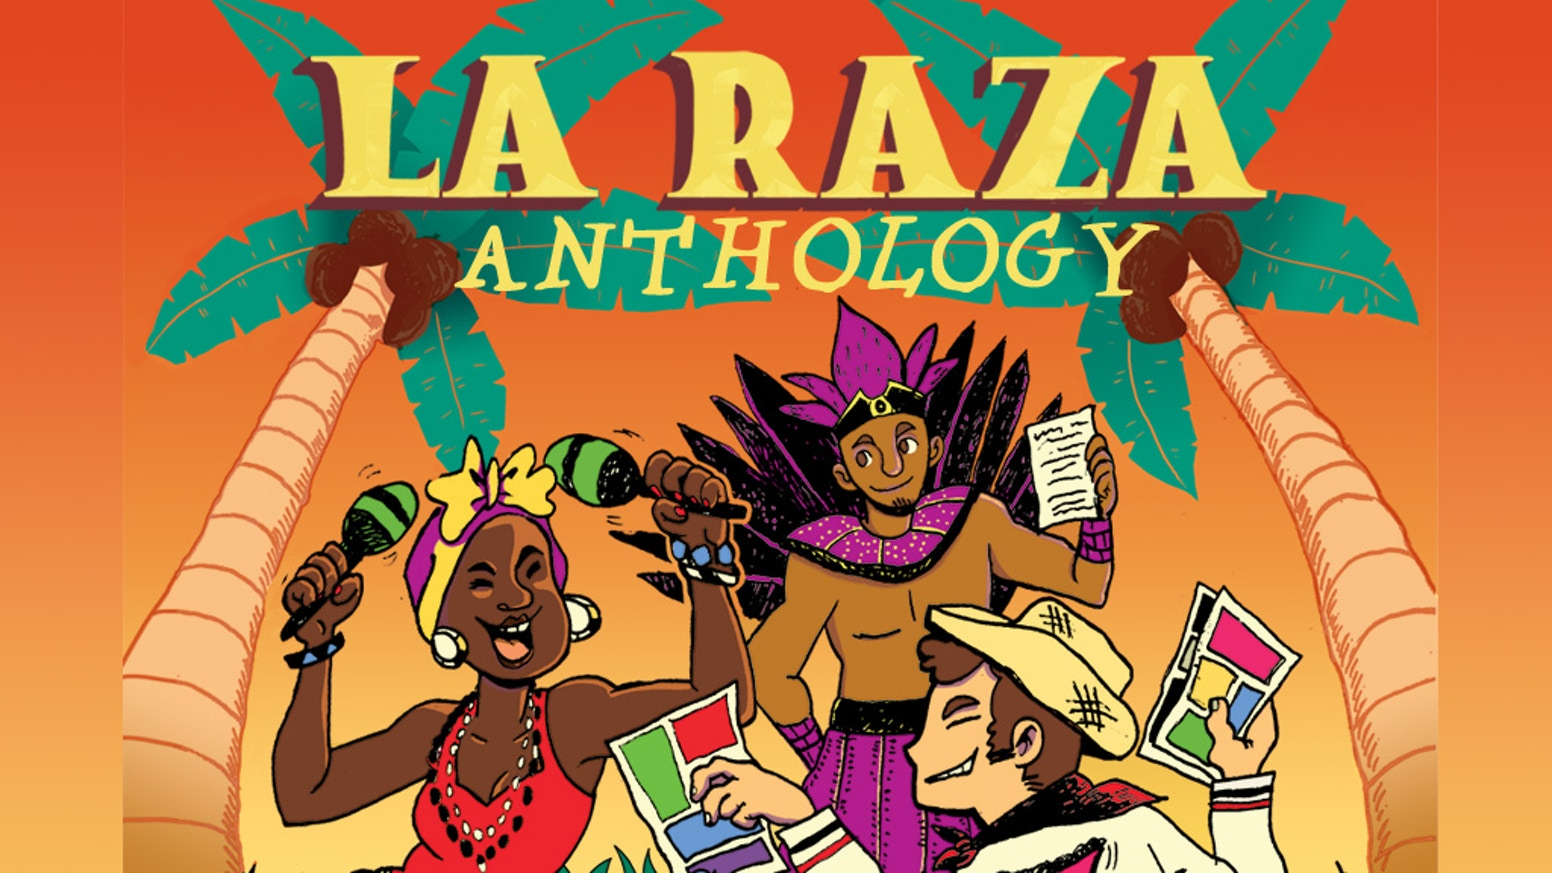 An unique anthology filled with comics, illustrations, poems and short stories celebrating & analyzing Latin American heritage.